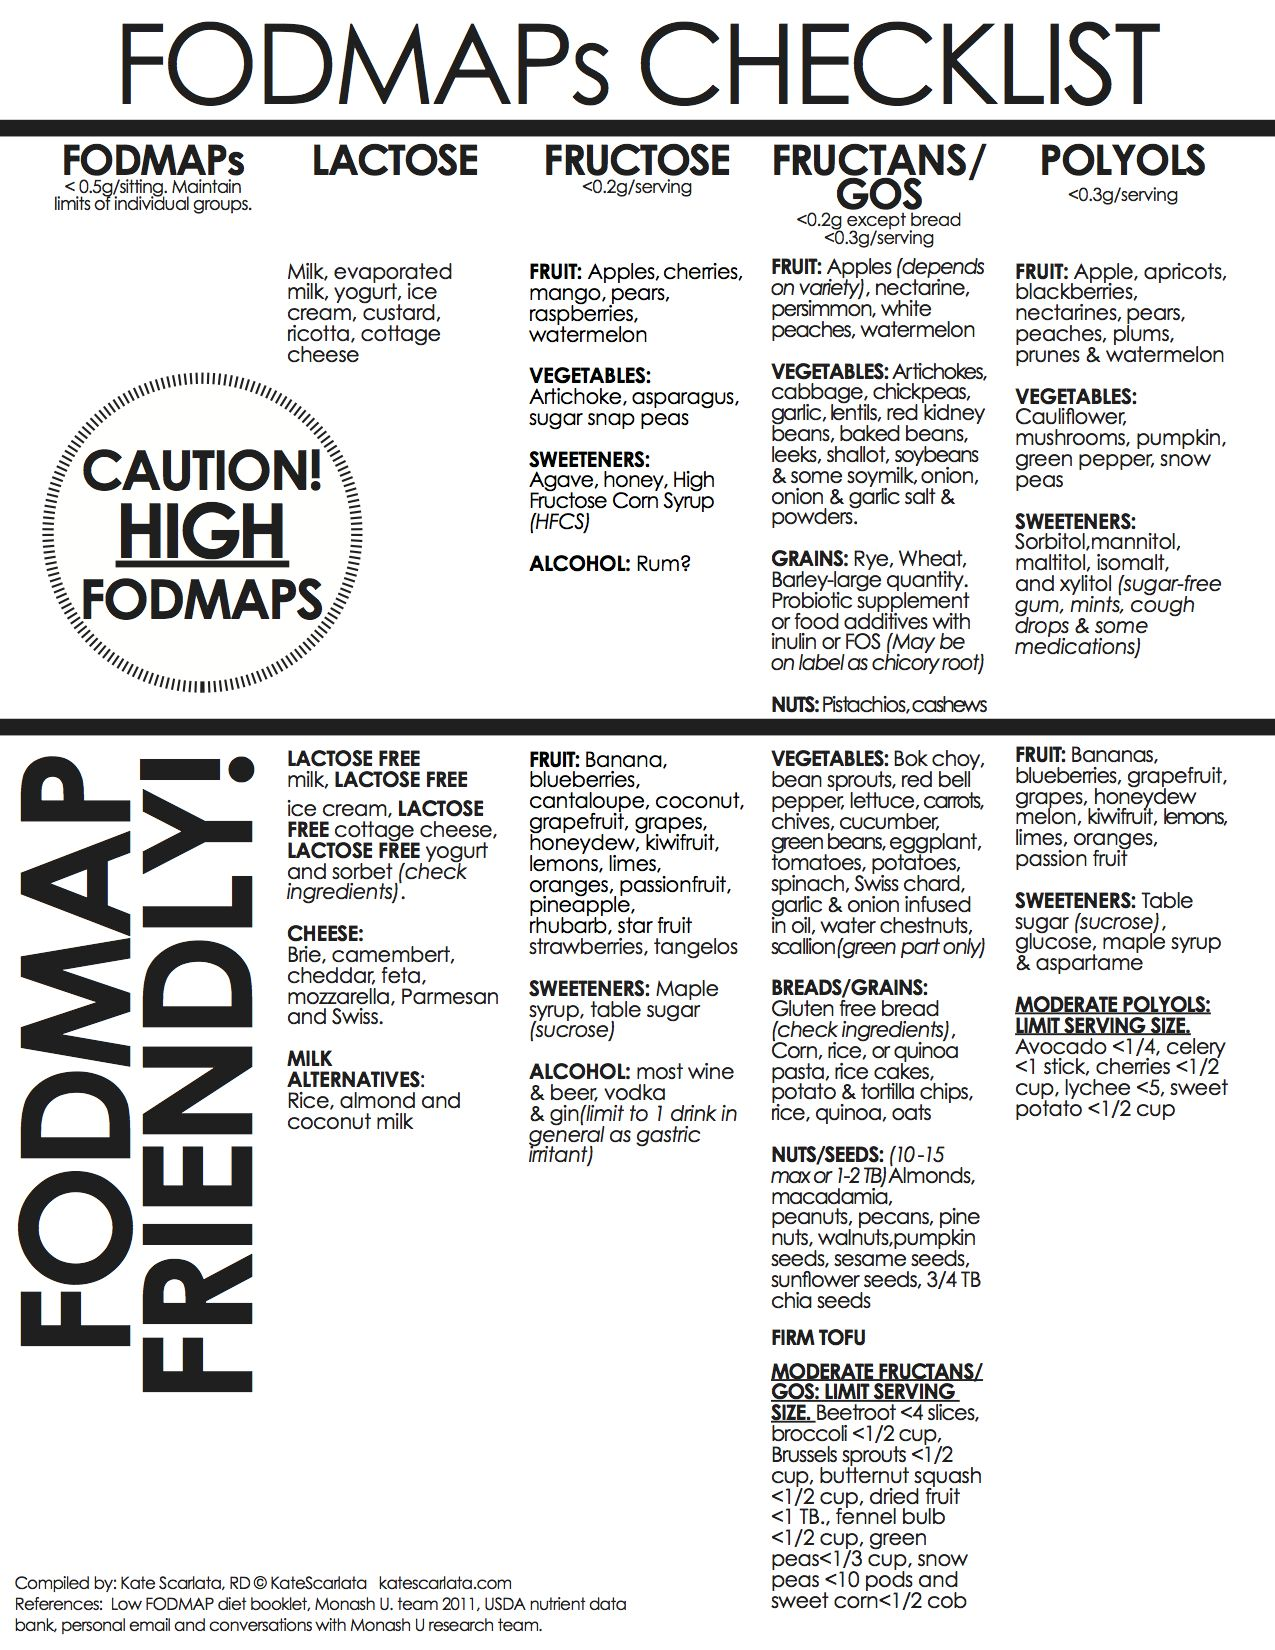 fodmaps. so many contradictions with gaps, yet same aim of easily